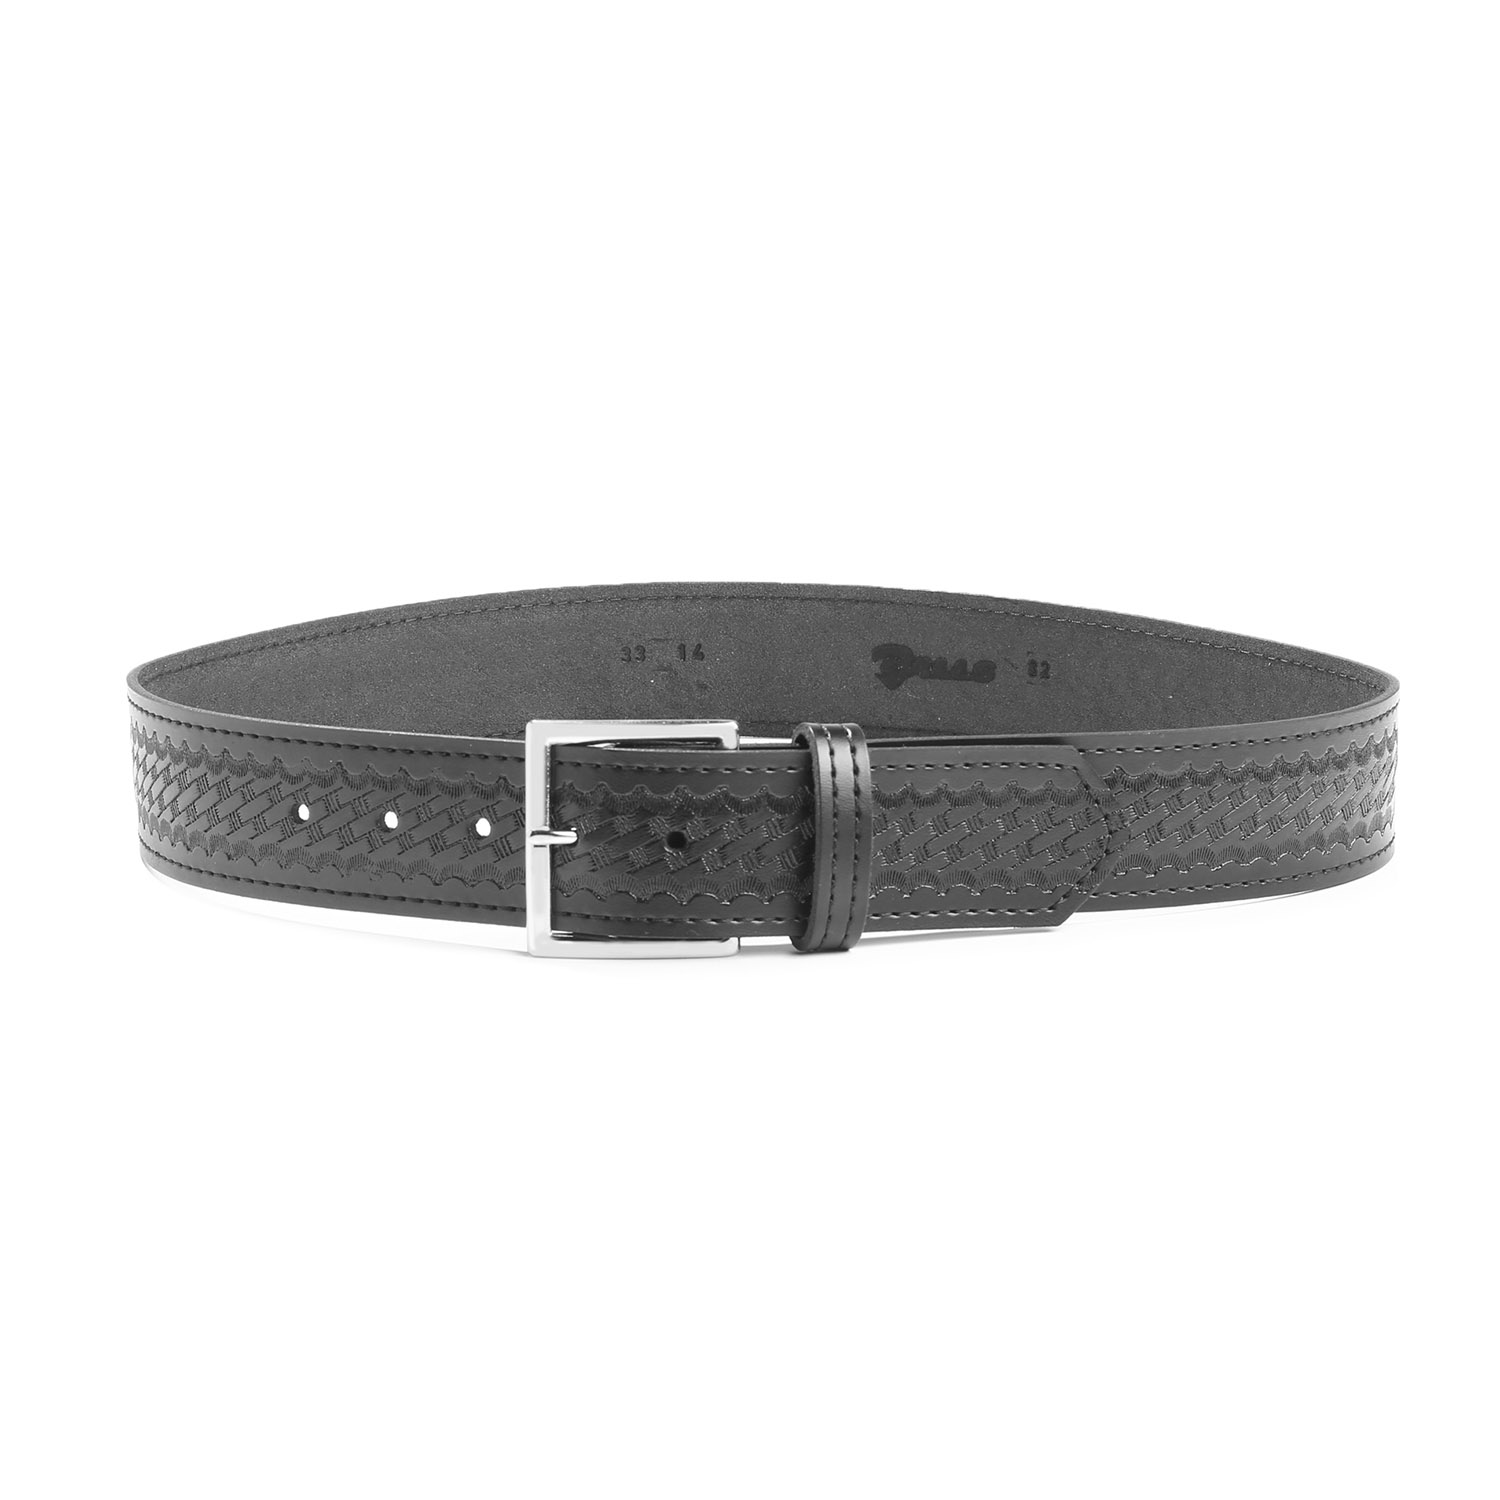 GENUINE MAN MADE LEATHER PLAIN WHITE SNAP ON BELT FOR BUCKLES TOP QUALITY MOLDED